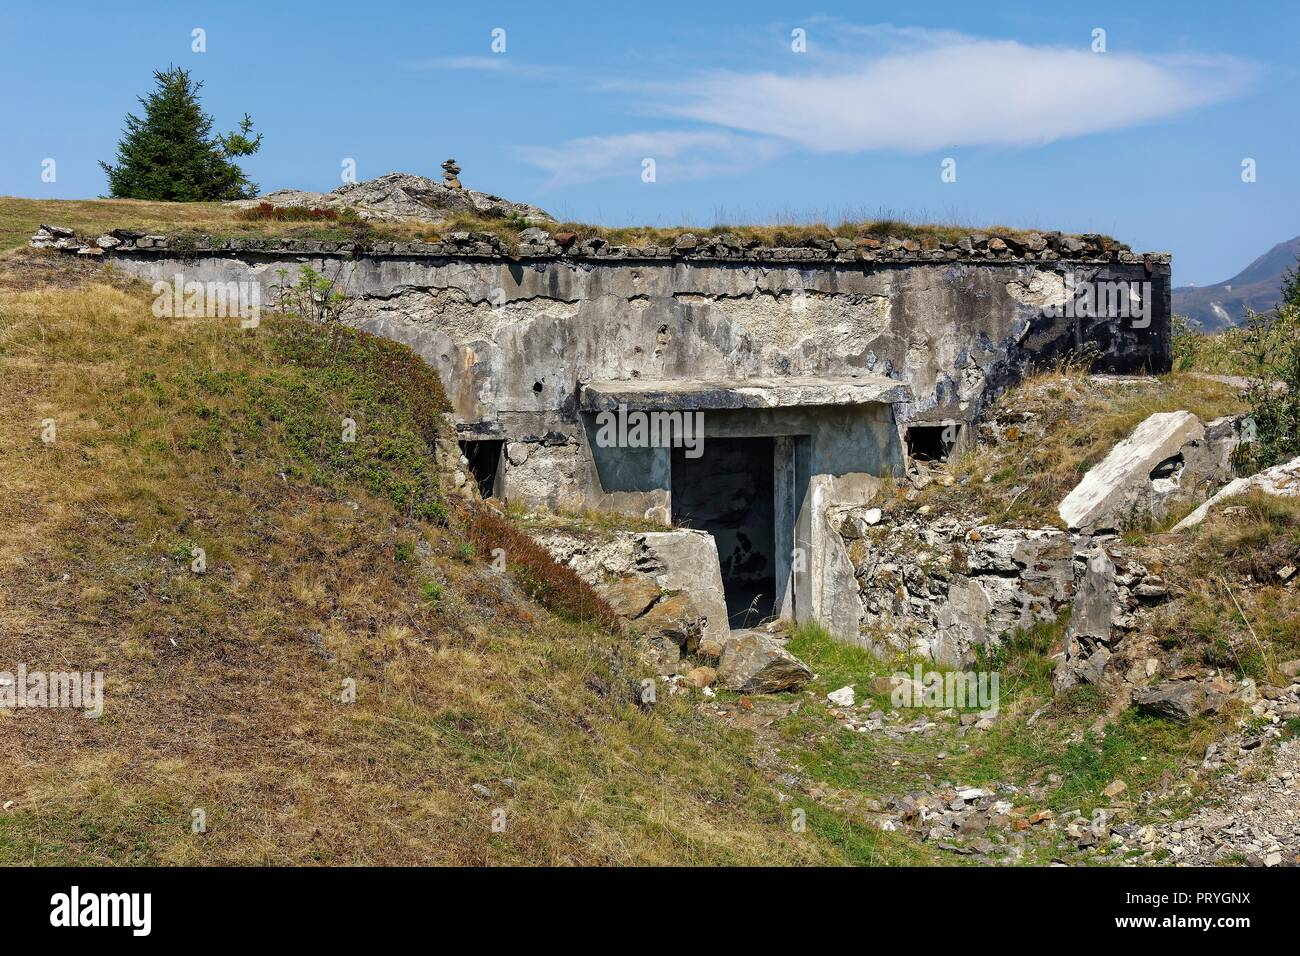 Main bunker, defence system Plamort, Second World War, to protect Italy from Nazi Germany, near the Plamorter moss biotope - Stock Image